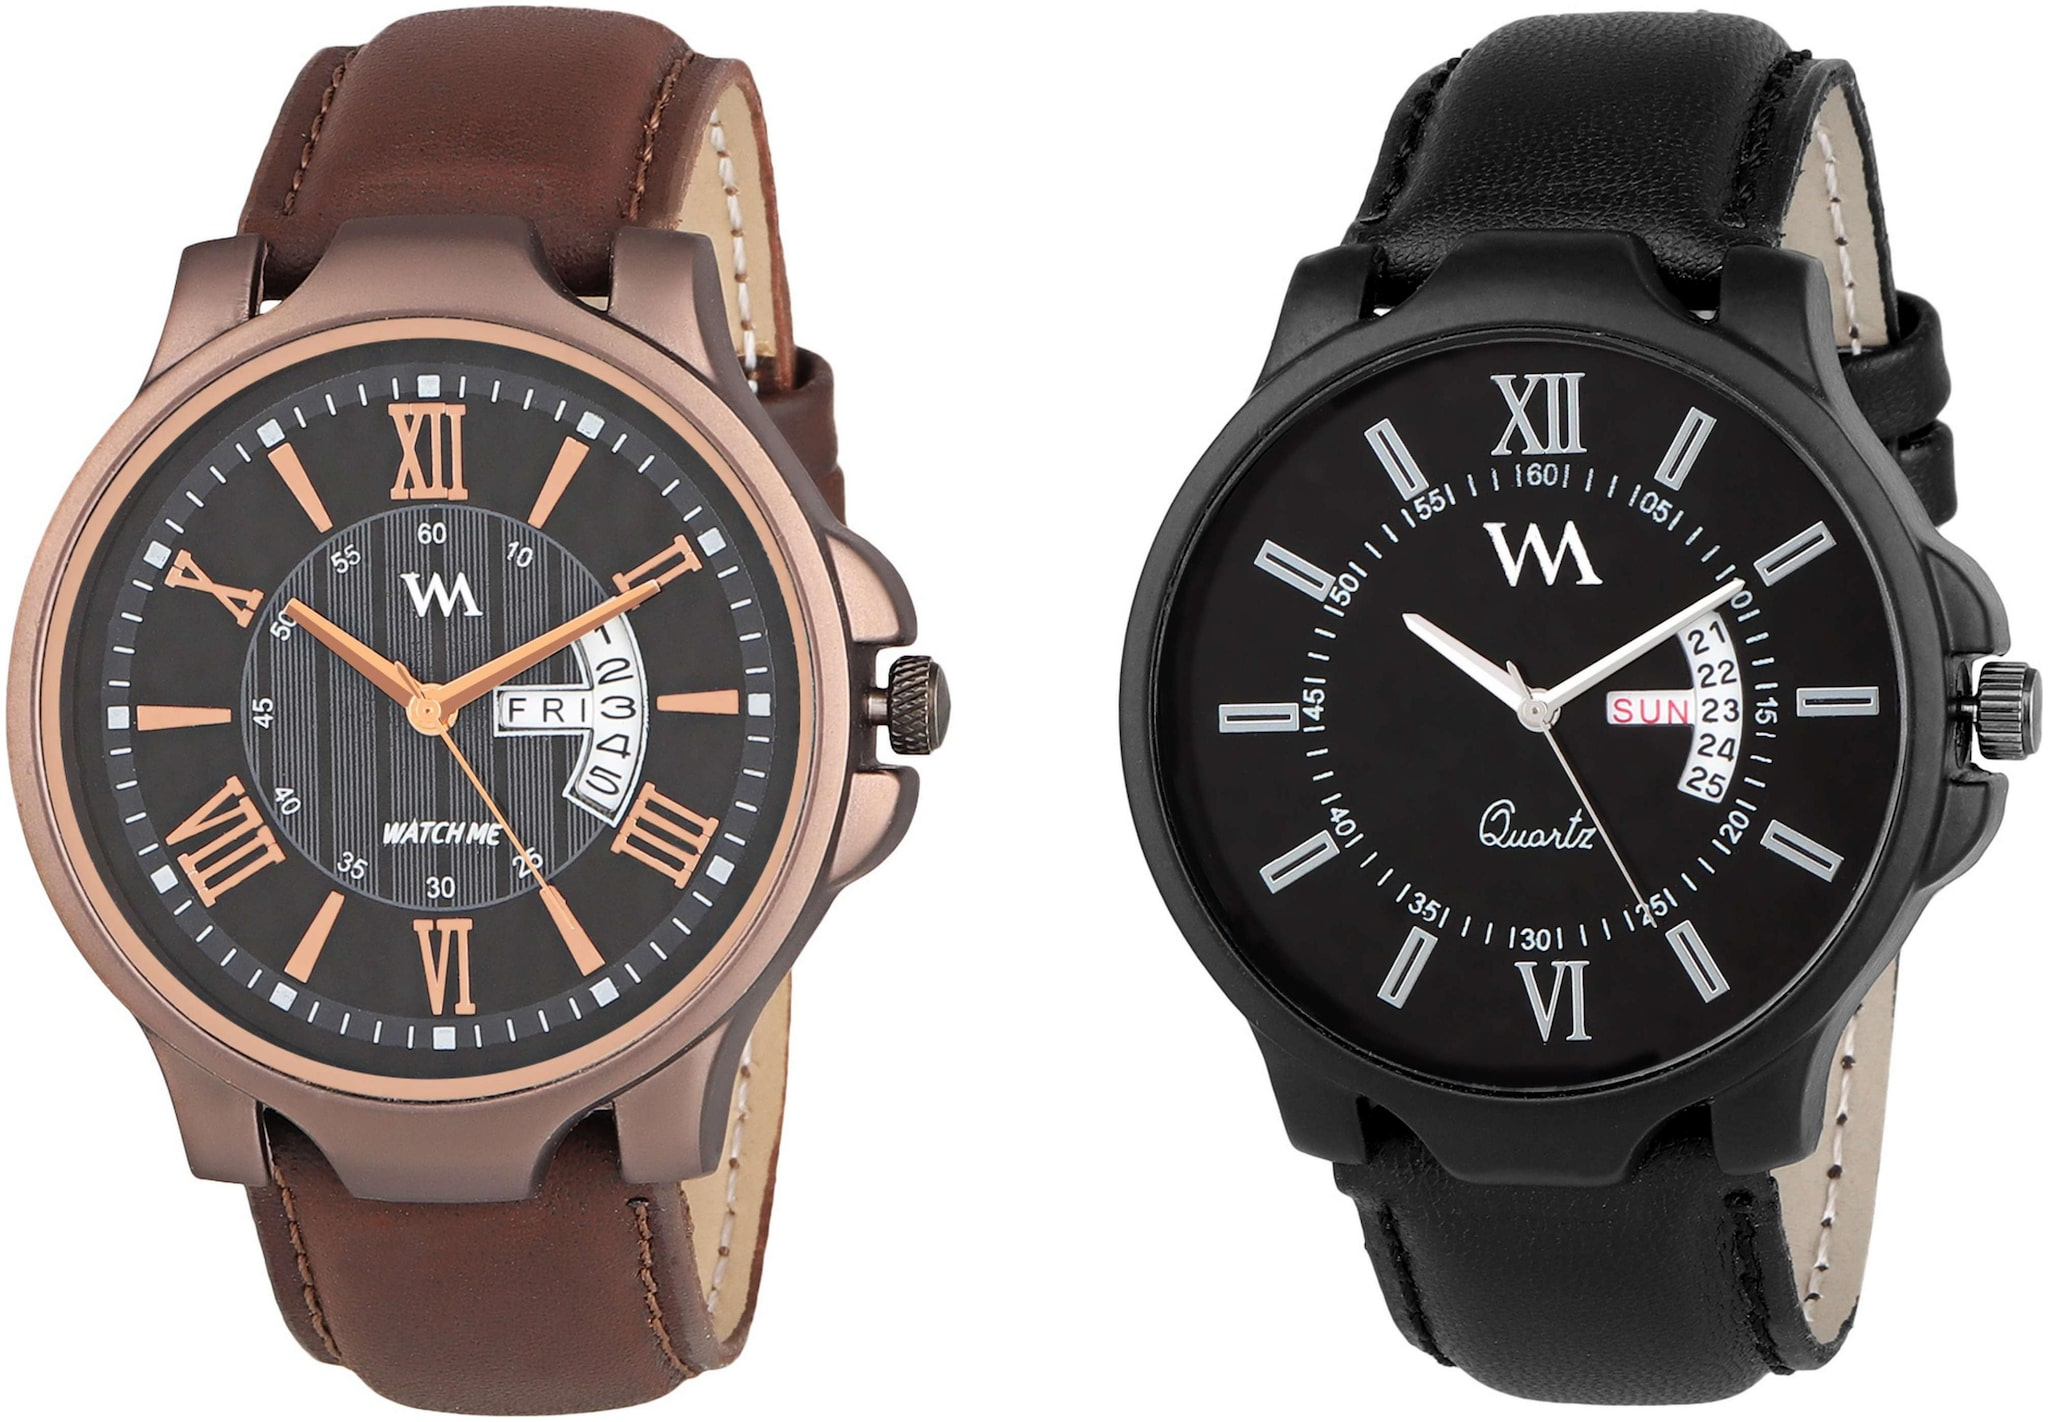 Watch Me Day and Date Analog Watches Gift Combo Set for Men and Boys DDWM 022 023